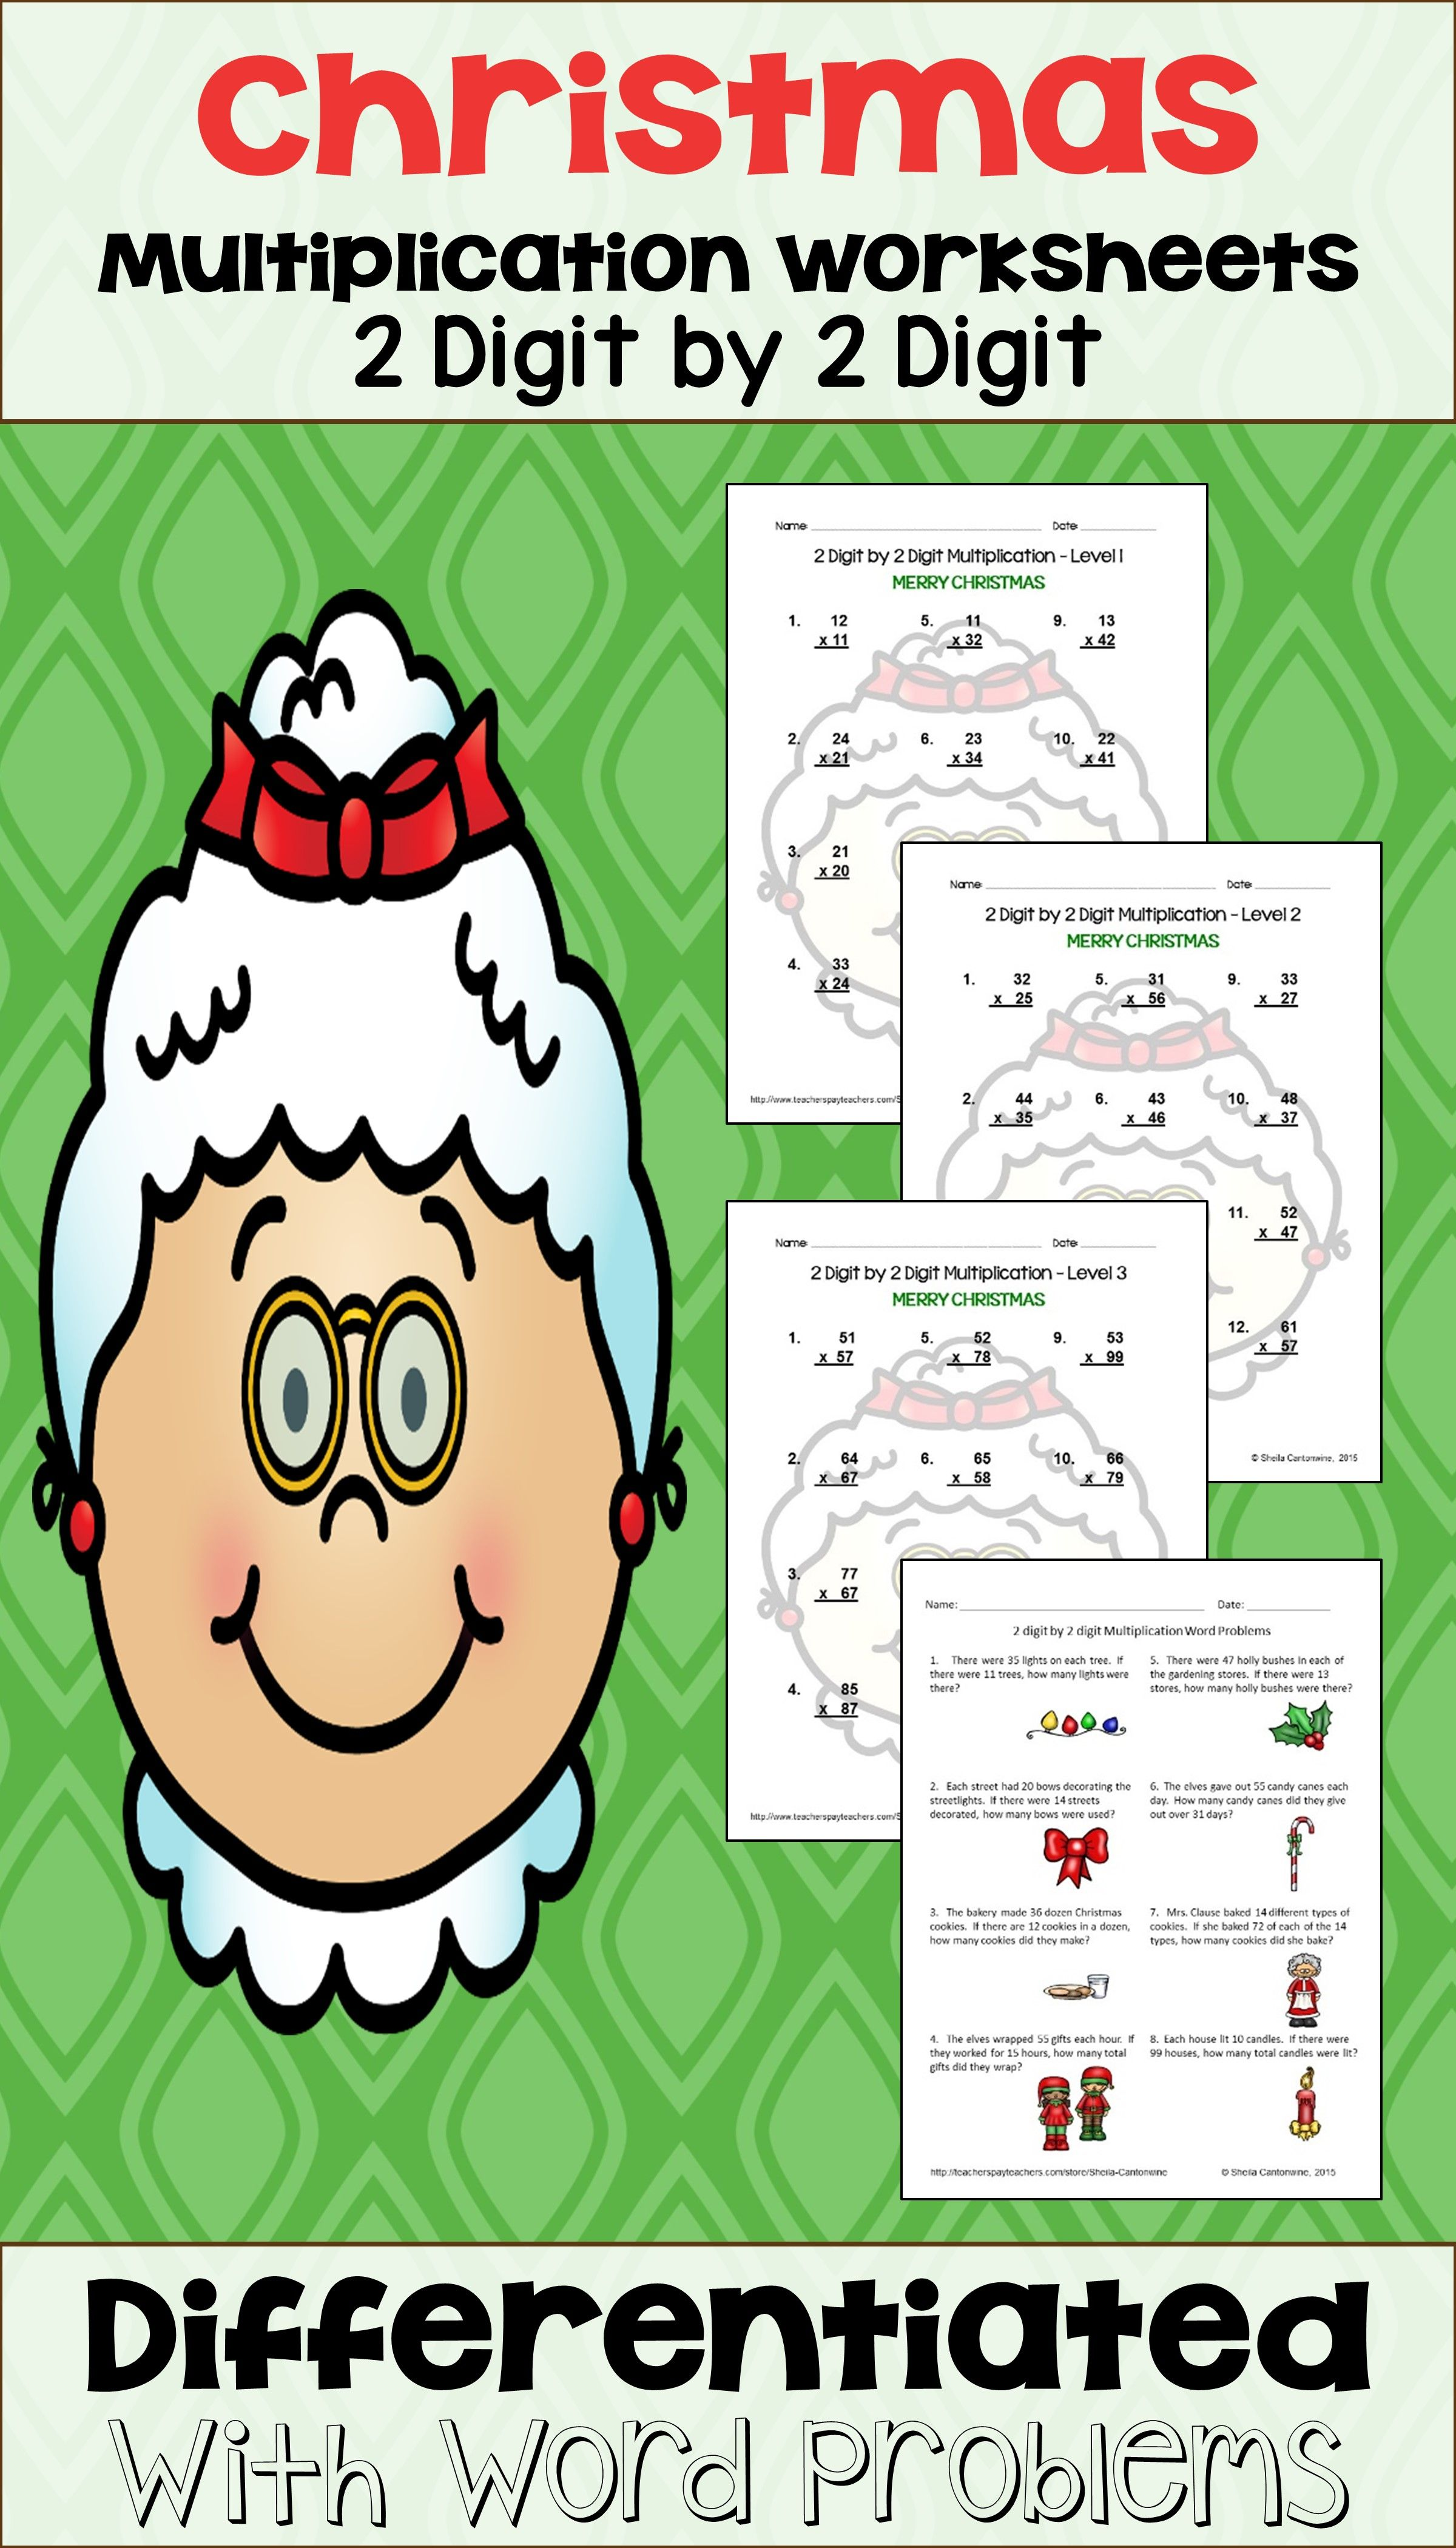 Christmas 2 Digit By 2 Digit Multiplication Worksheets Differentiated